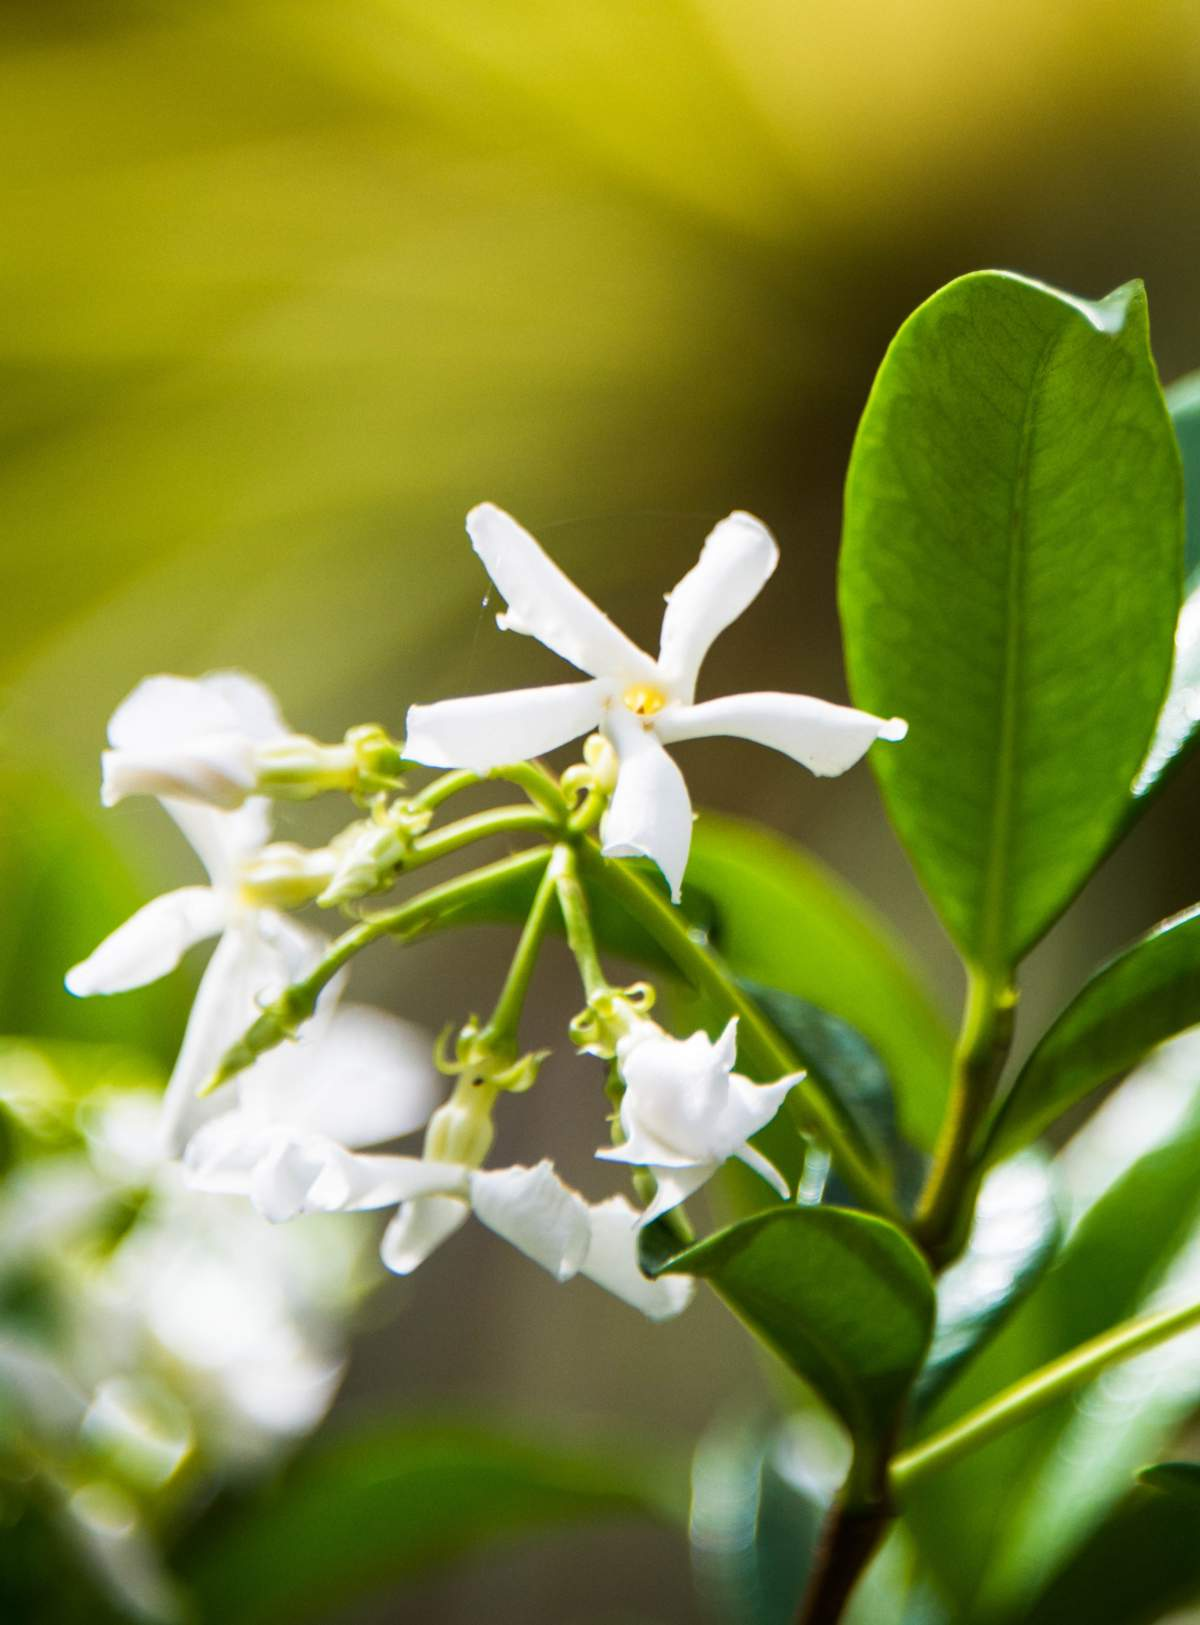 Blooming Indian jasmine vine